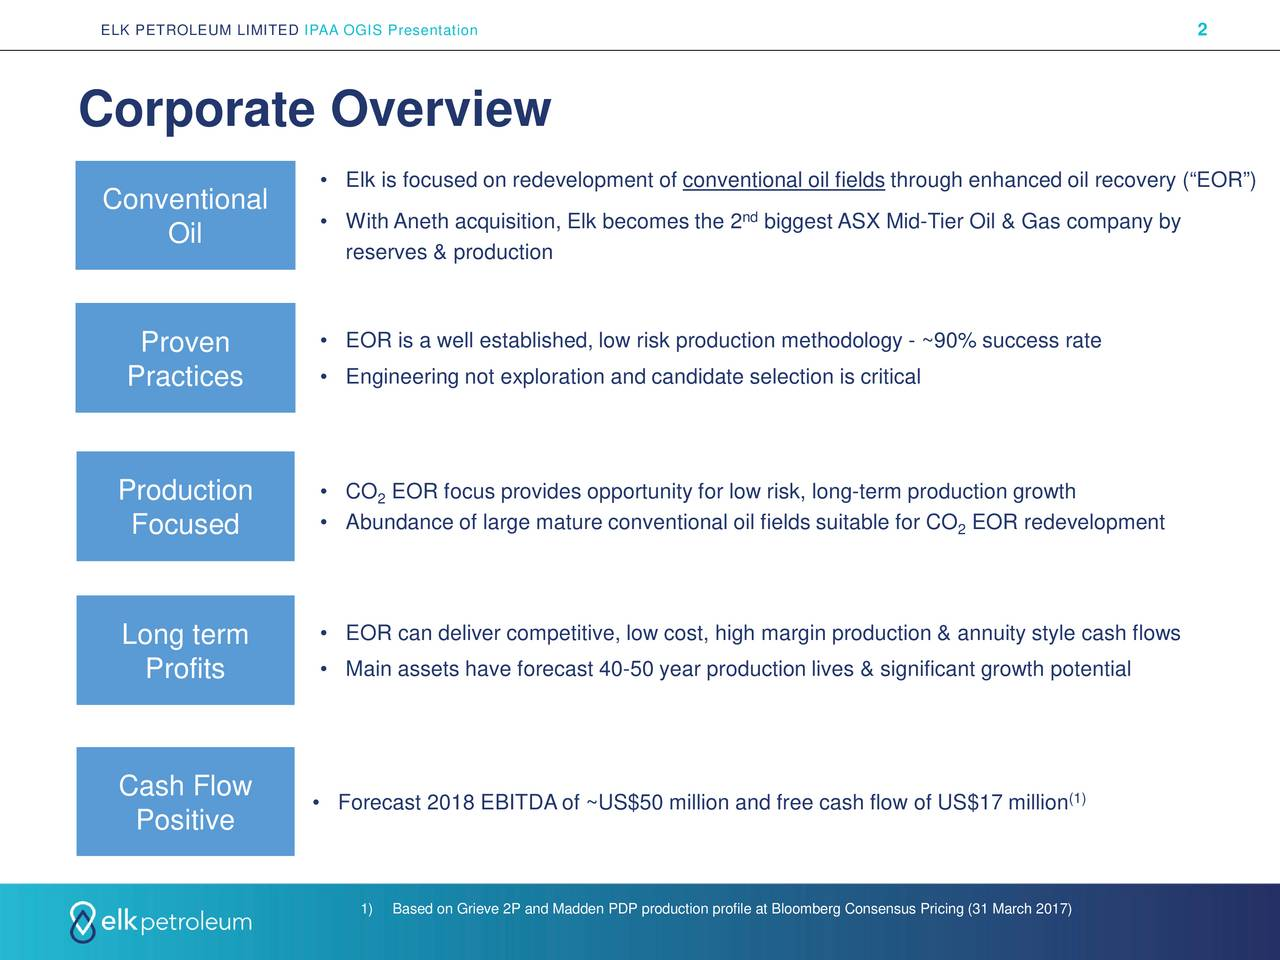 """Corporate Overview • Elk is focused on redevelopment of conventional oil fields through enhanced oil recovery (""""EOR"""") Conventional • With Aneth acquisition, Elk becomes the 2 biggest ASX Mid-Tier Oil & Gas company by Oil reserves & production Proven • EOR is a well established, low risk production methodology - ~90% success rate Practices • Engineering not exploration and candidate selection is critical Production • CO EOR focus provides opportunity for low risk, long-term production growth 2 Focused • Abundance of large mature conventional oil fields suitable f2r CO EOR redevelopment Long term • EOR can deliver competitive, low cost, high margin production & annuity style cash flows Profits • Main assets have forecast 40-50 year production lives & significant growth potential Cash Flow • Forecast 2018 EBITDA of ~US$50 million and free cash flow of US$17 million Positive 1) Based on Grieve 2P and Madden PDP production profile at Bloomberg Consensus Pricing (31 March 2017)"""